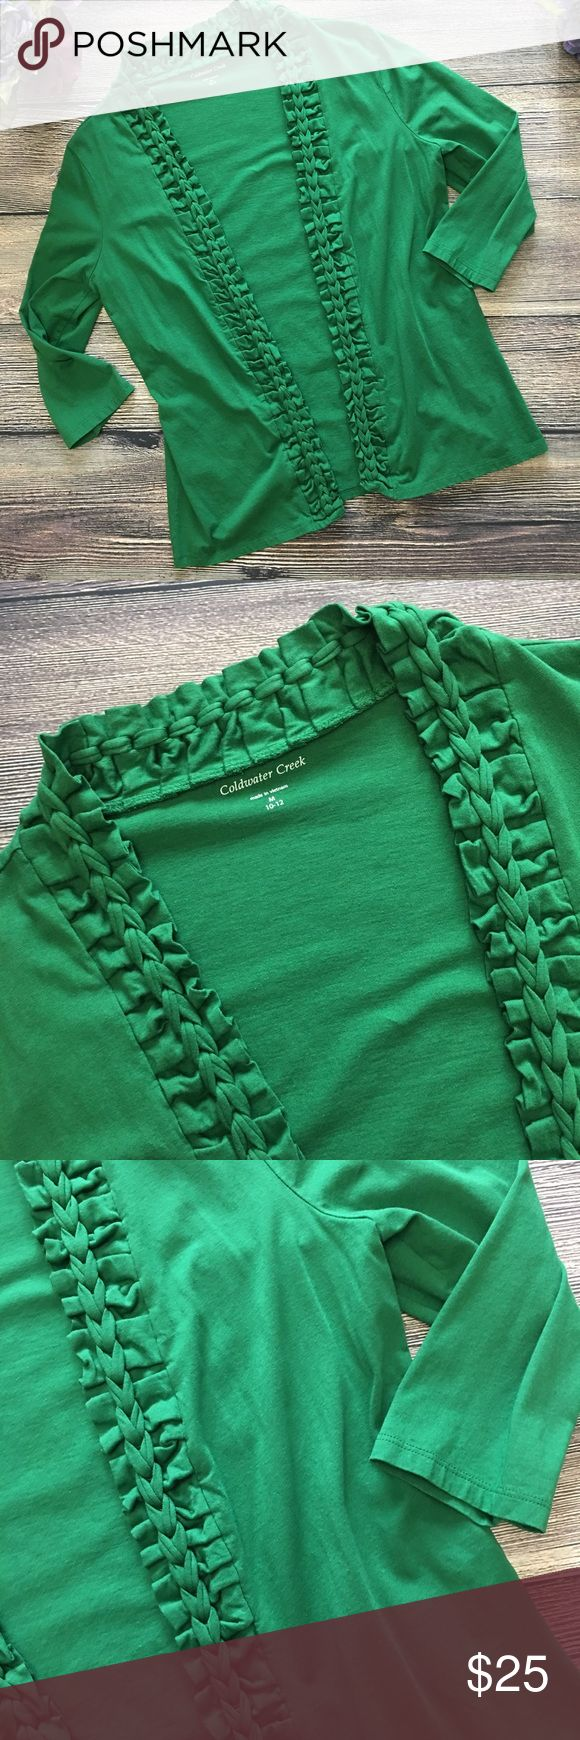 "Coldwater Creek Braided lapel cardigan med 10/12 From Coldwater Creek, this open cardigan is perfect for St. Patrick's Day - and will come in handy all year round. A blend of cotton/modal, soft and easy to wear. Longer length. Braided lapel with ruffle edging takes her beyond your standard cardi. Brilliant kelly green and in like new condition. Offers warmly received.   Size: Medium 10/12 Approx bust/pit to pit: 19"" Approx length when laid flat: 25"" Fabric content: Cotton/modal Coldwater…"